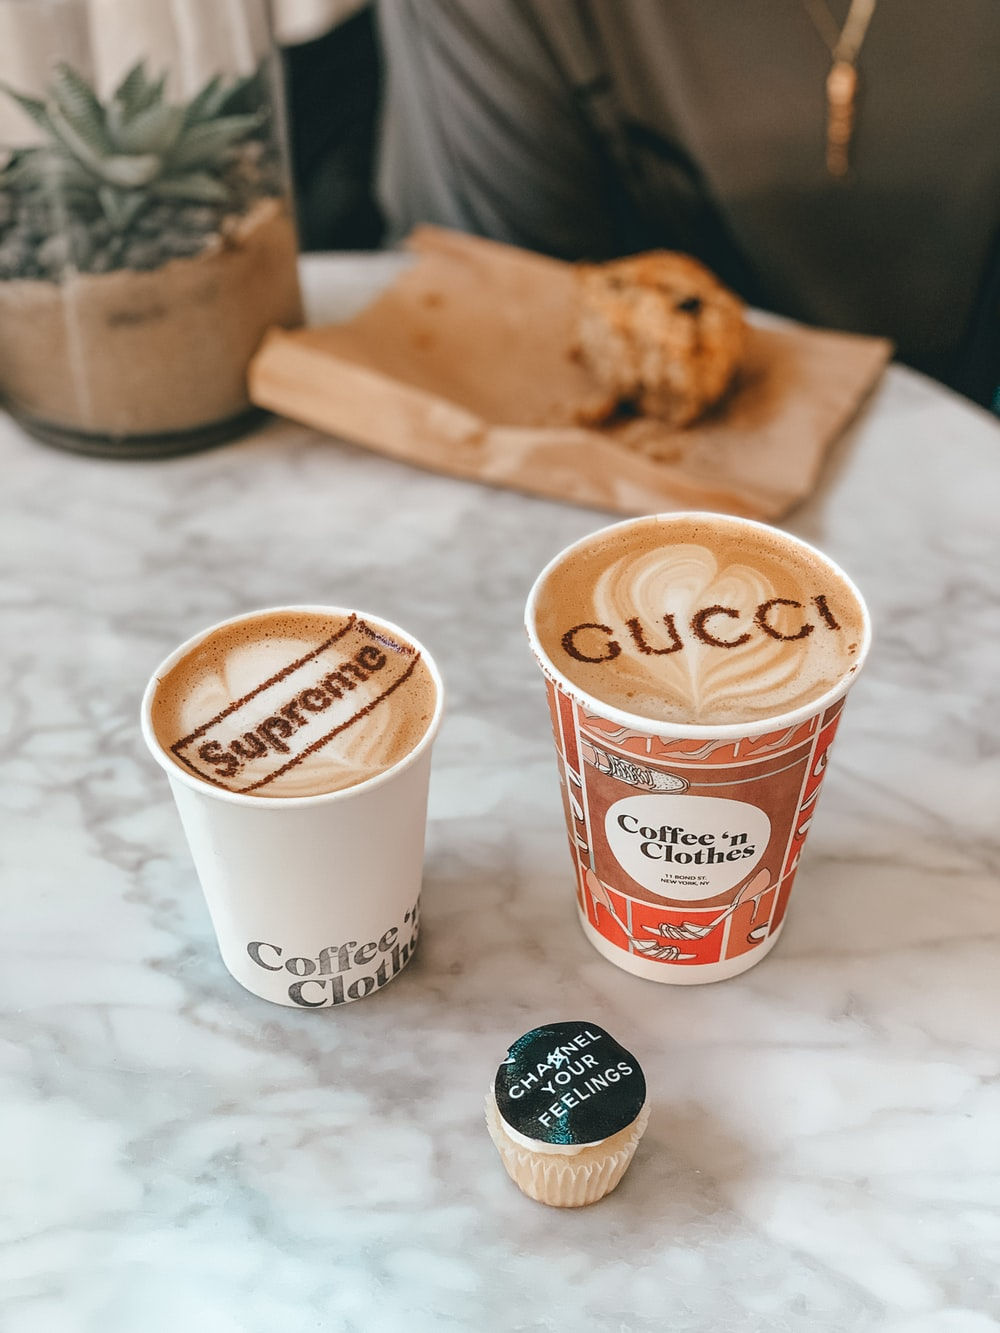 white and red disposable cup beside brown bread